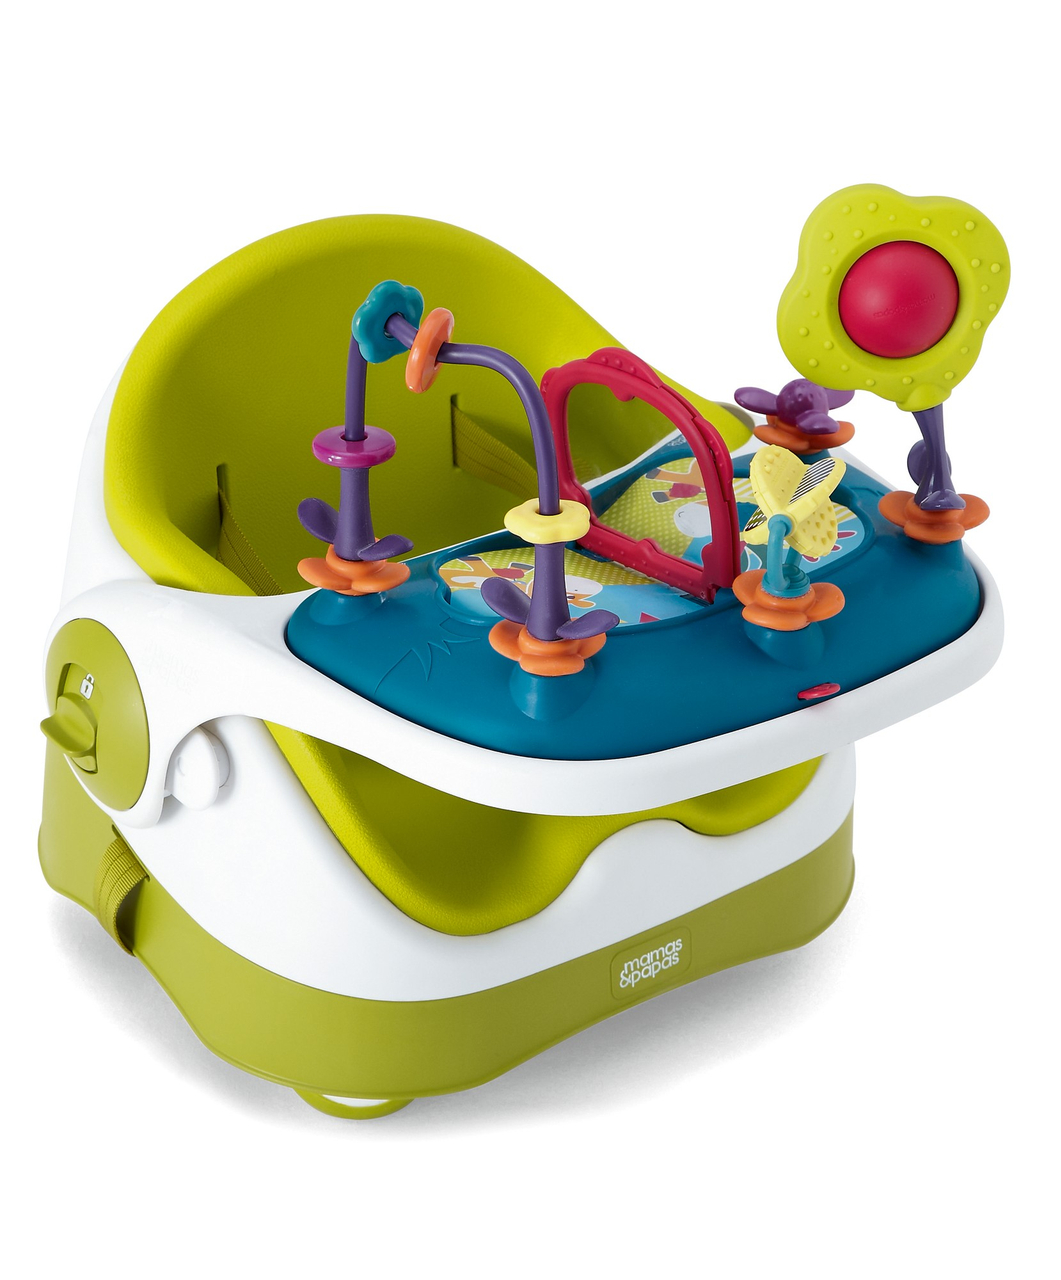 Baby Bud  sc 1 st  Tales of a Twin Mum & Review: Mamas u0026 Papas Baby Bud booster seat with activity tray ...